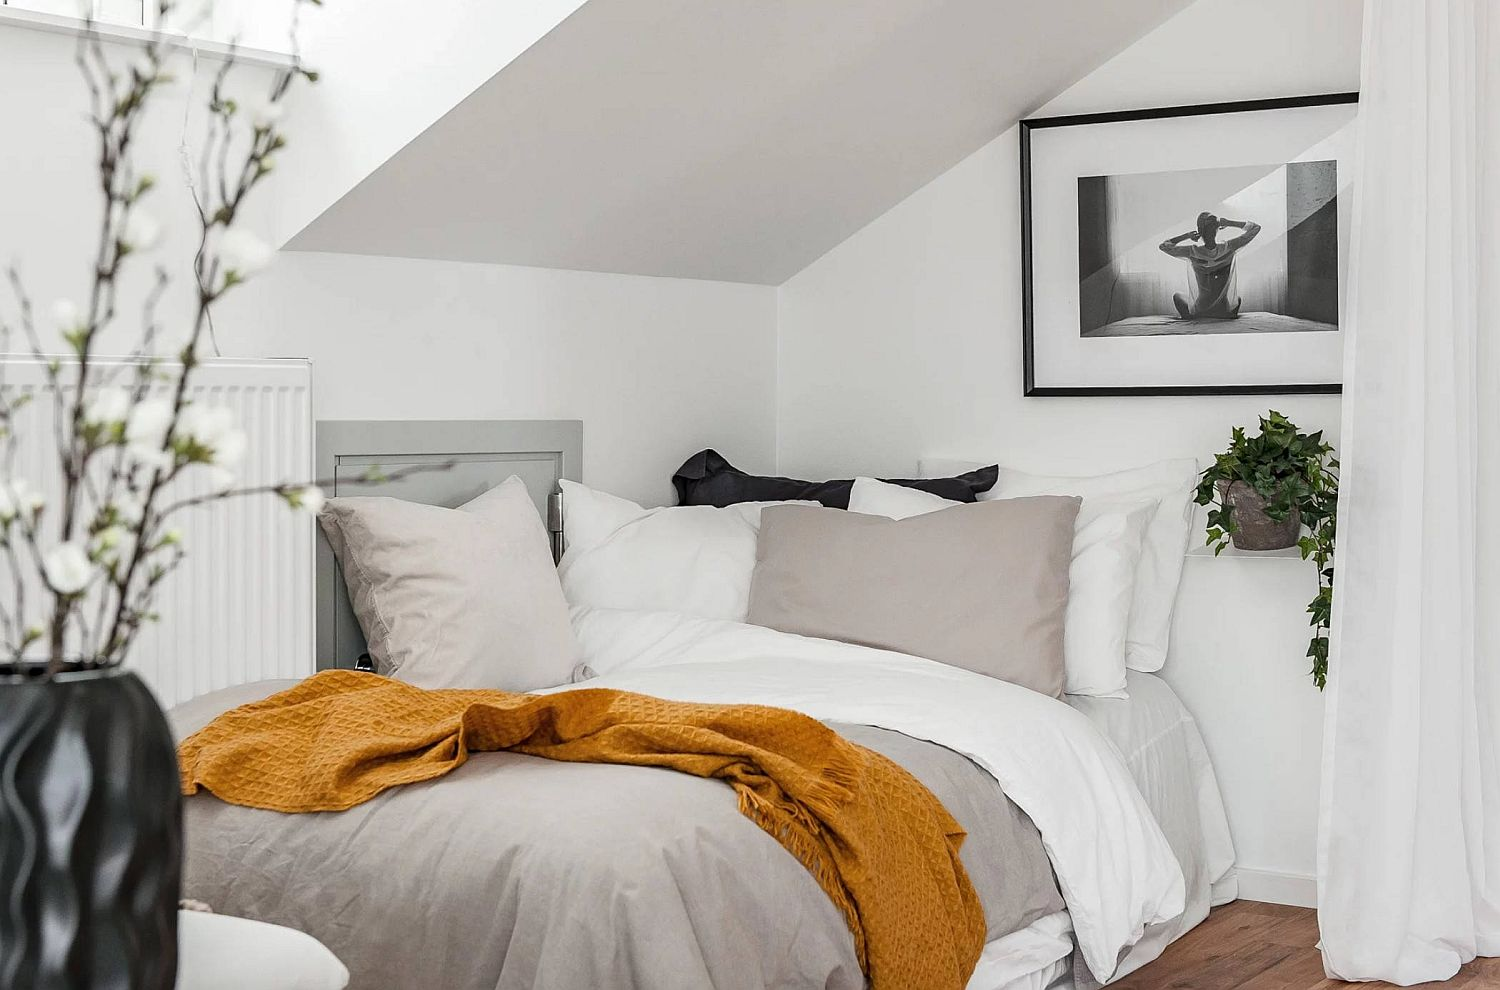 Bed in the corner and drapes save space in the small bedroom